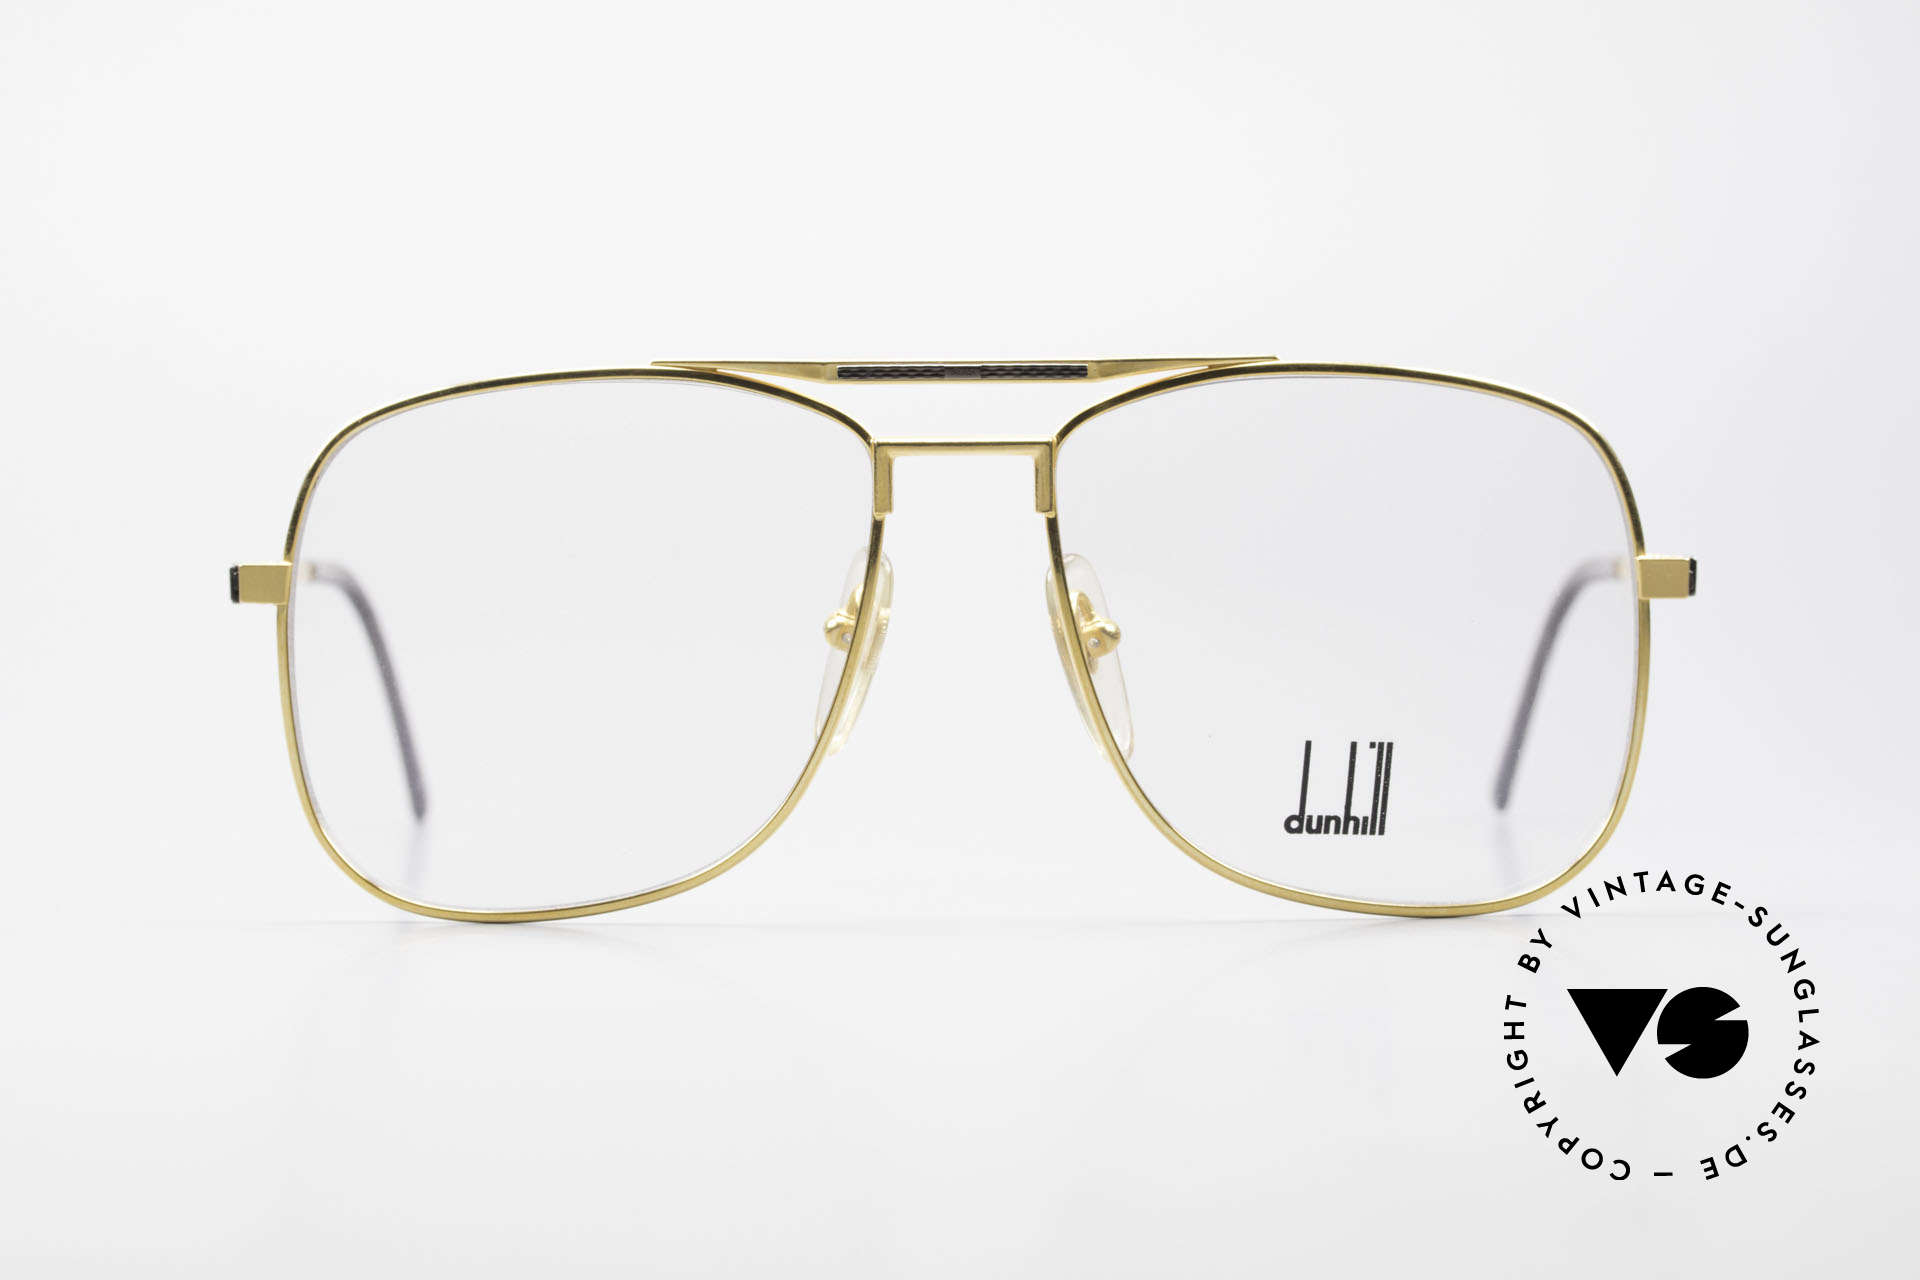 Dunhill 6038 Gold-Plated Titanium Frame, hard gold-plated ALFRED DUNHILL Titanium frame, Made for Men